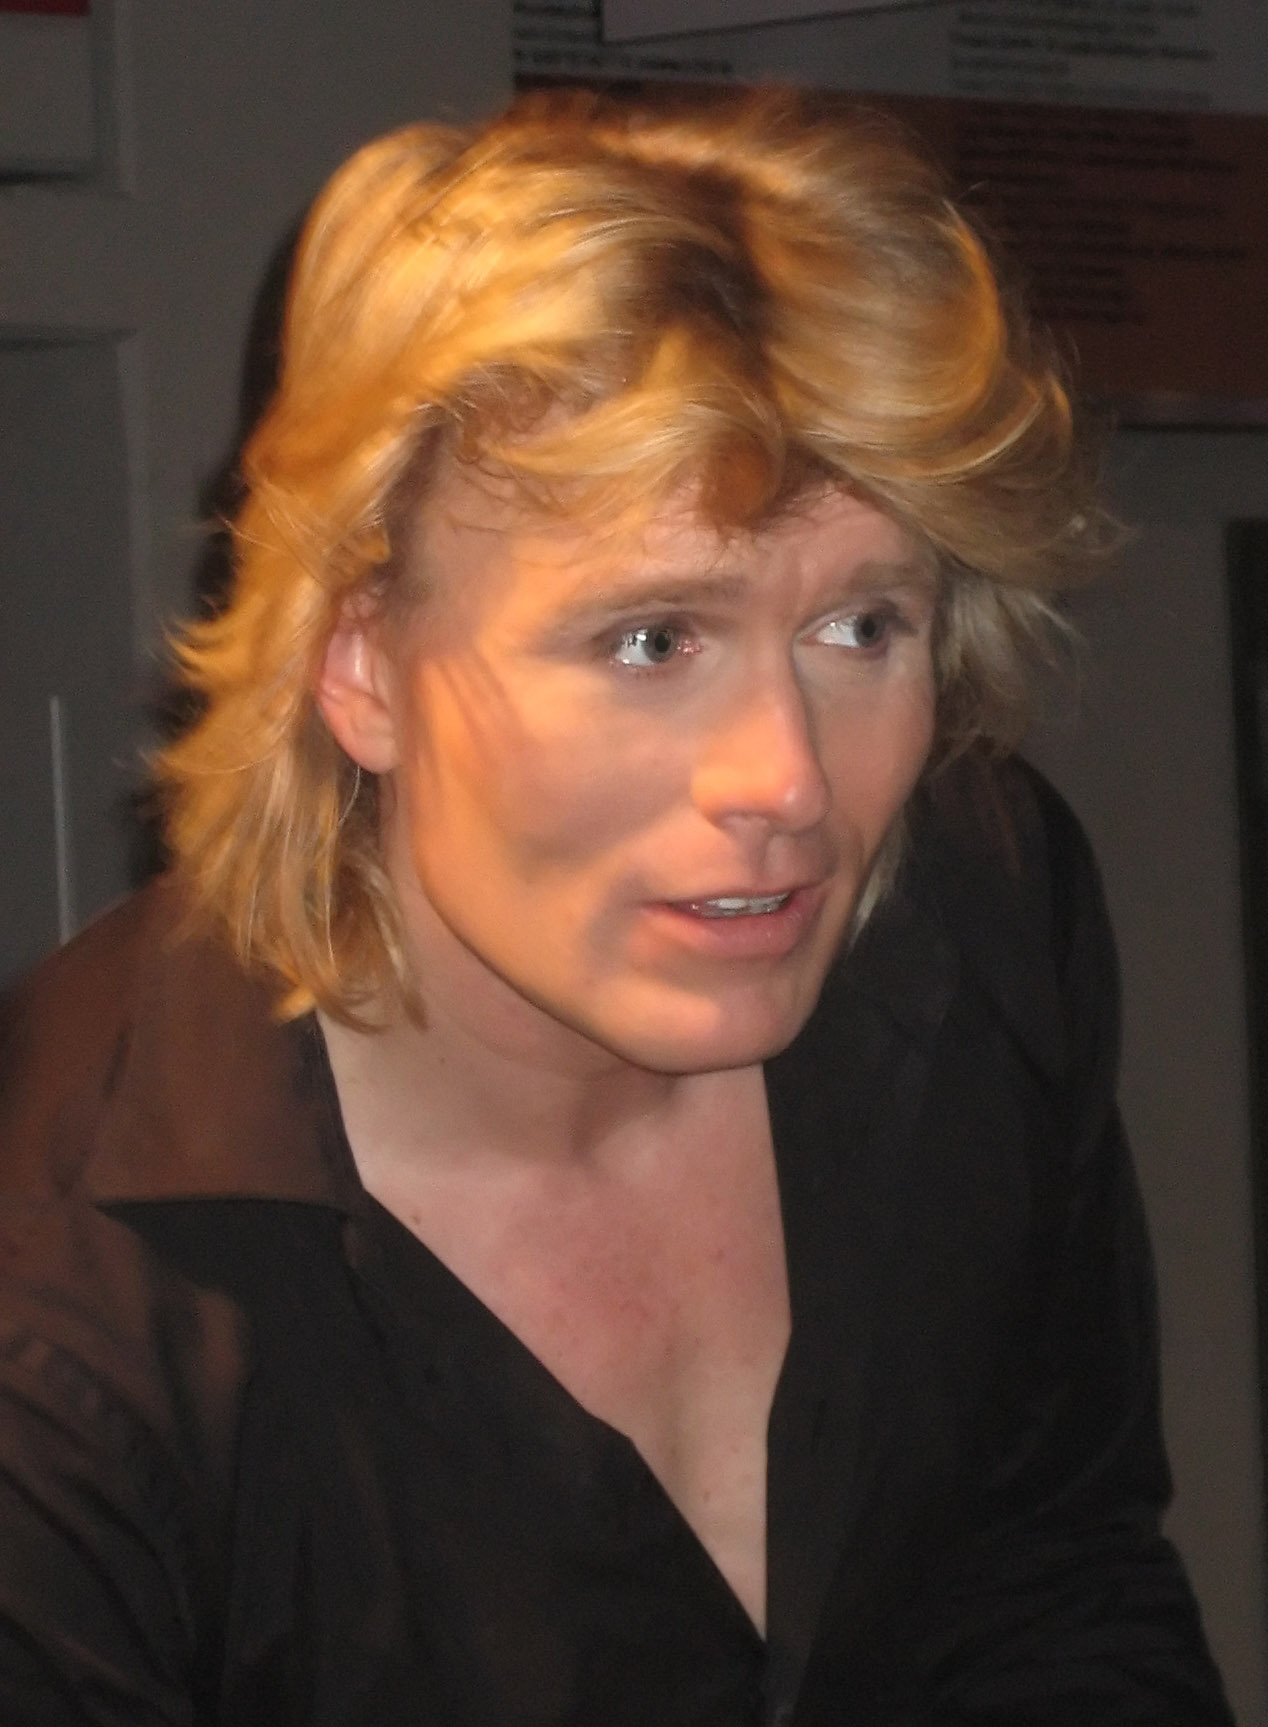 The 49-year old son of father (?) and mother(?) Hans Klok in 2018 photo. Hans Klok earned a  million dollar salary - leaving the net worth at 10 million in 2018